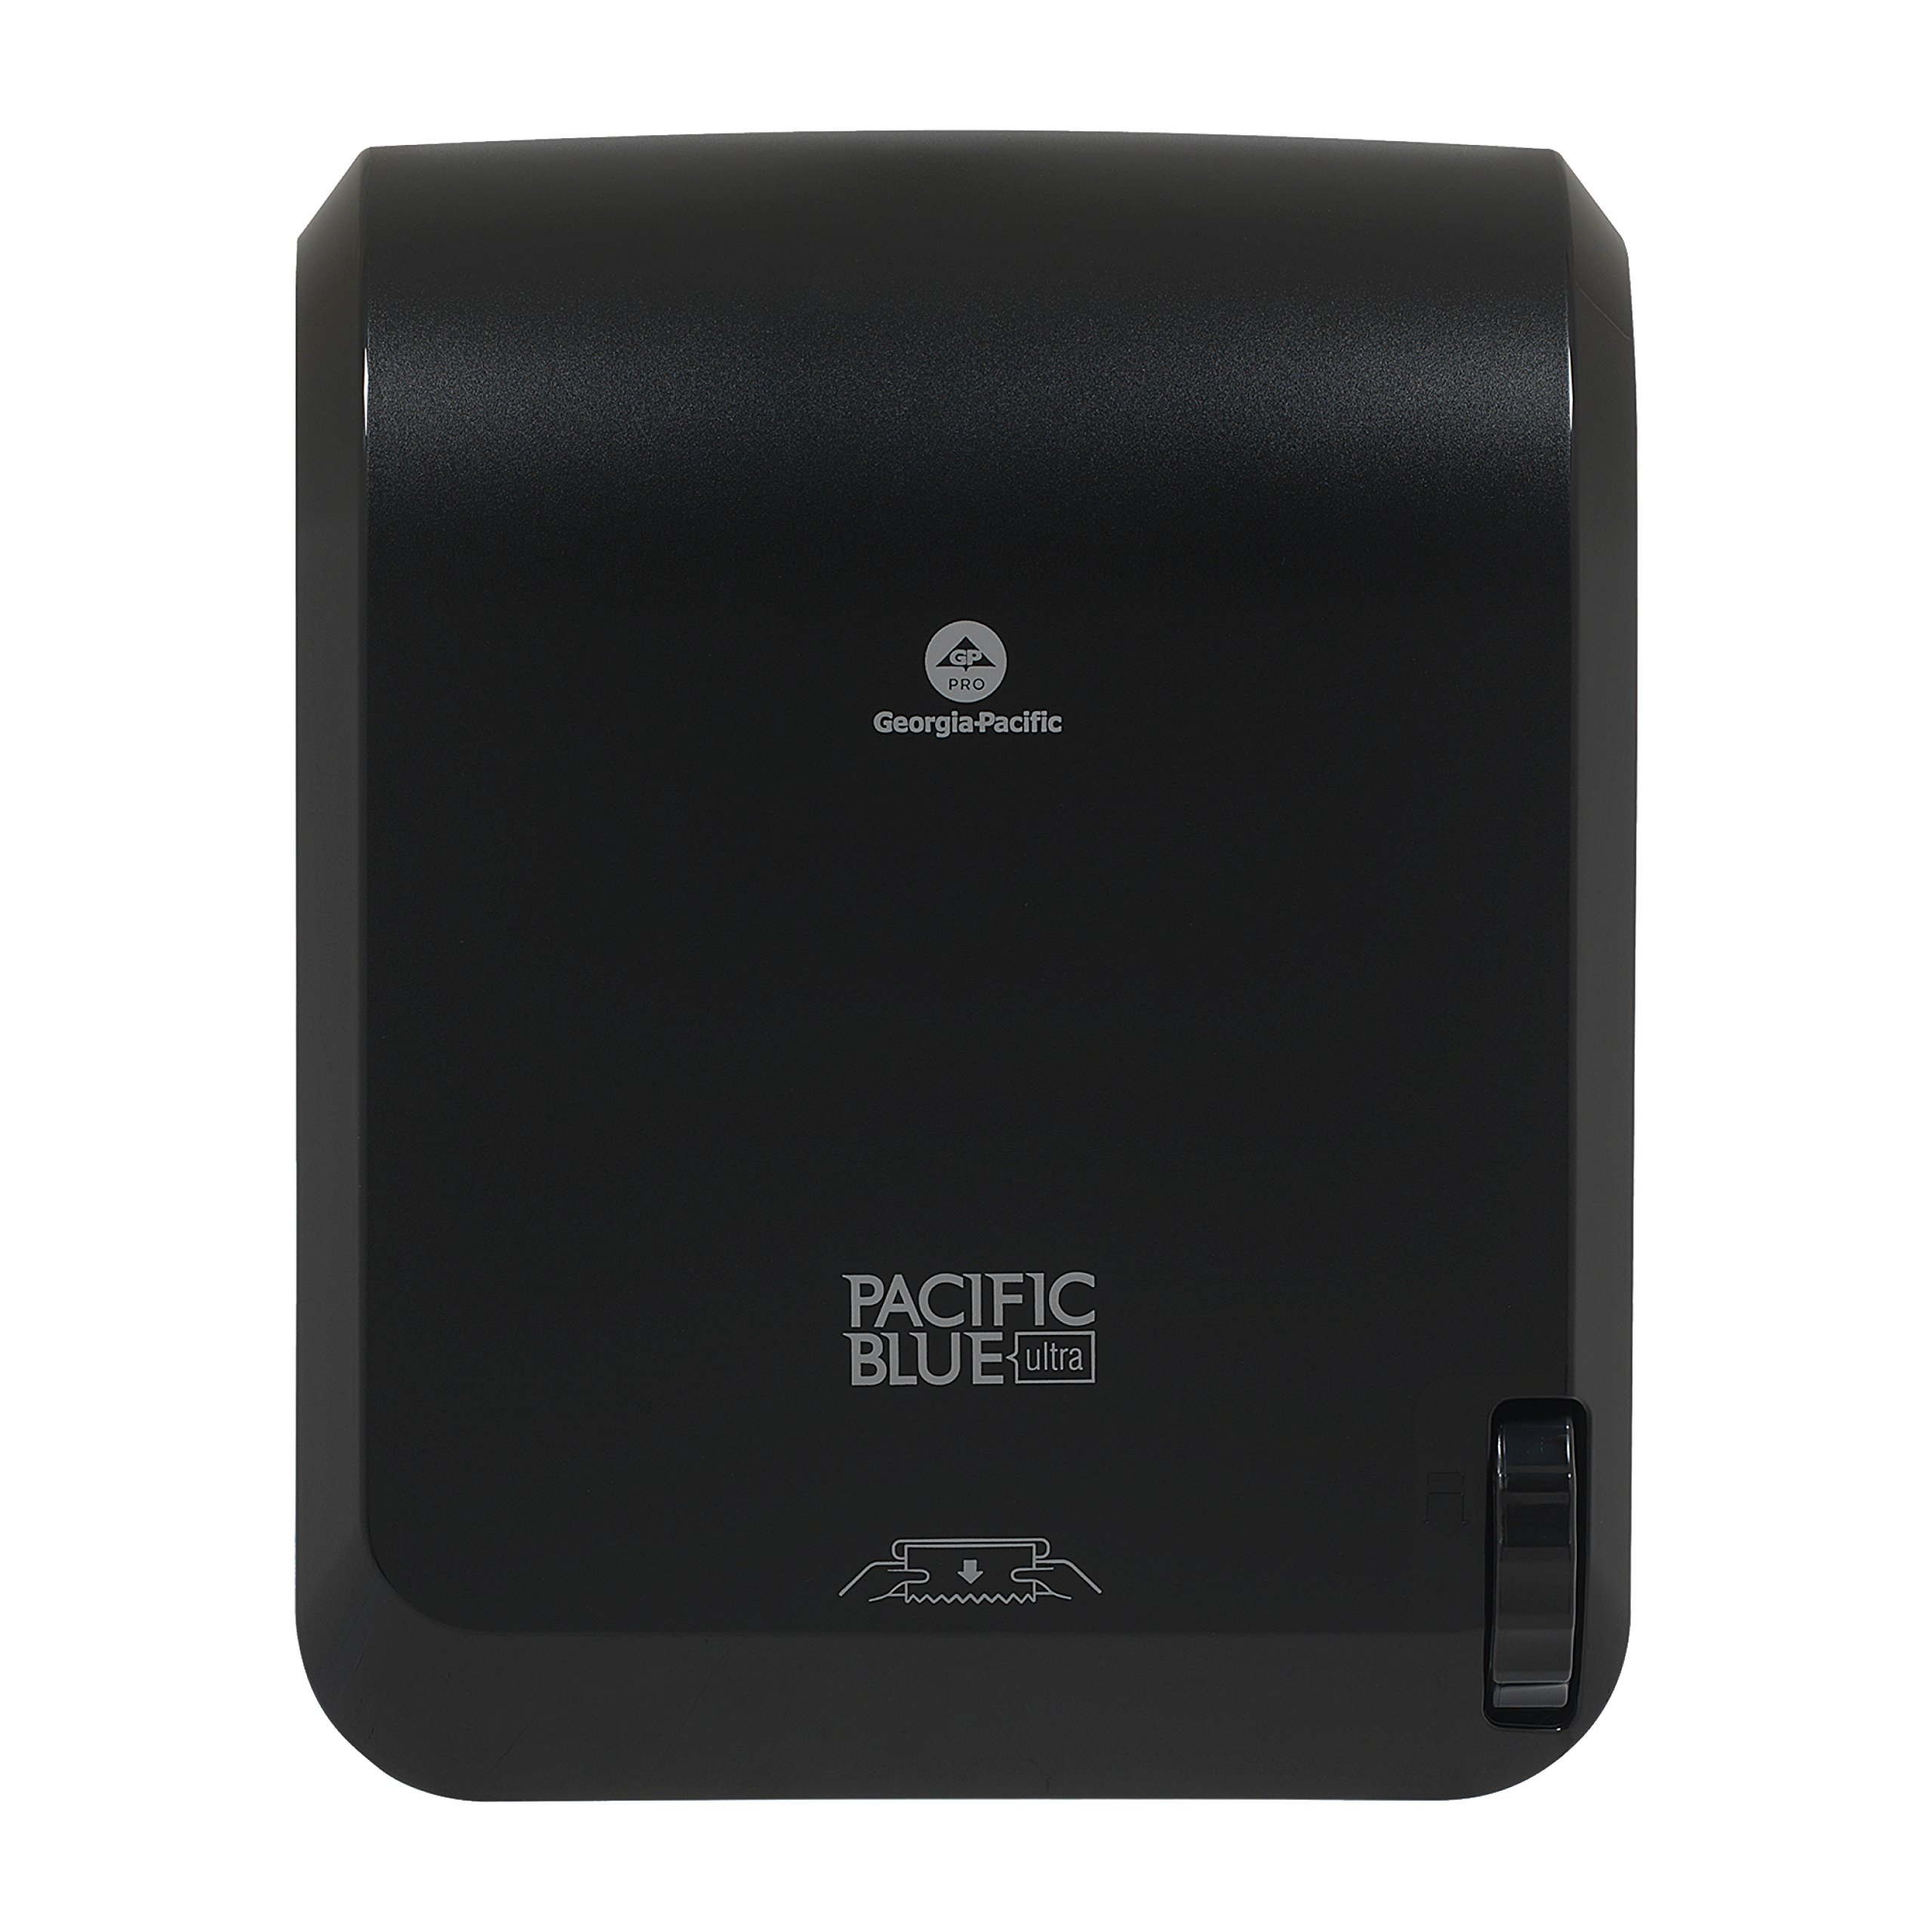 "Pacific Blue Ultra Mechanical Paper Towel Dispenser by Georgia-Pacific, Black, 59589, 12.9"" W x 9.3"" D by 16.7"" H"